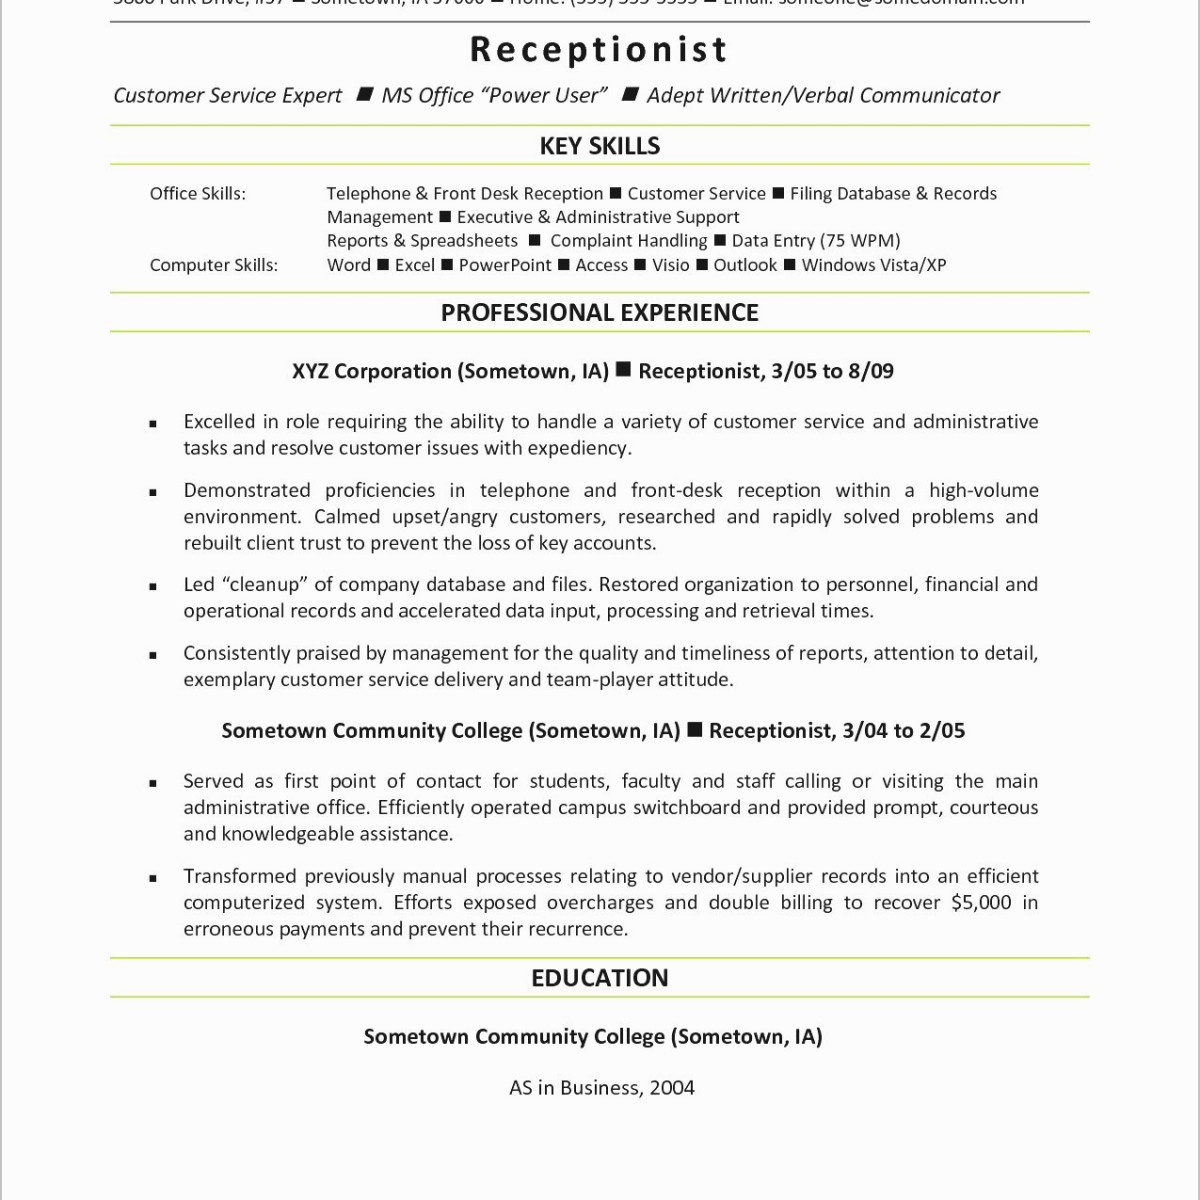 My Perfect Resume Com - My Perfect Resume Customer Service Awesome Career Focus Resume New